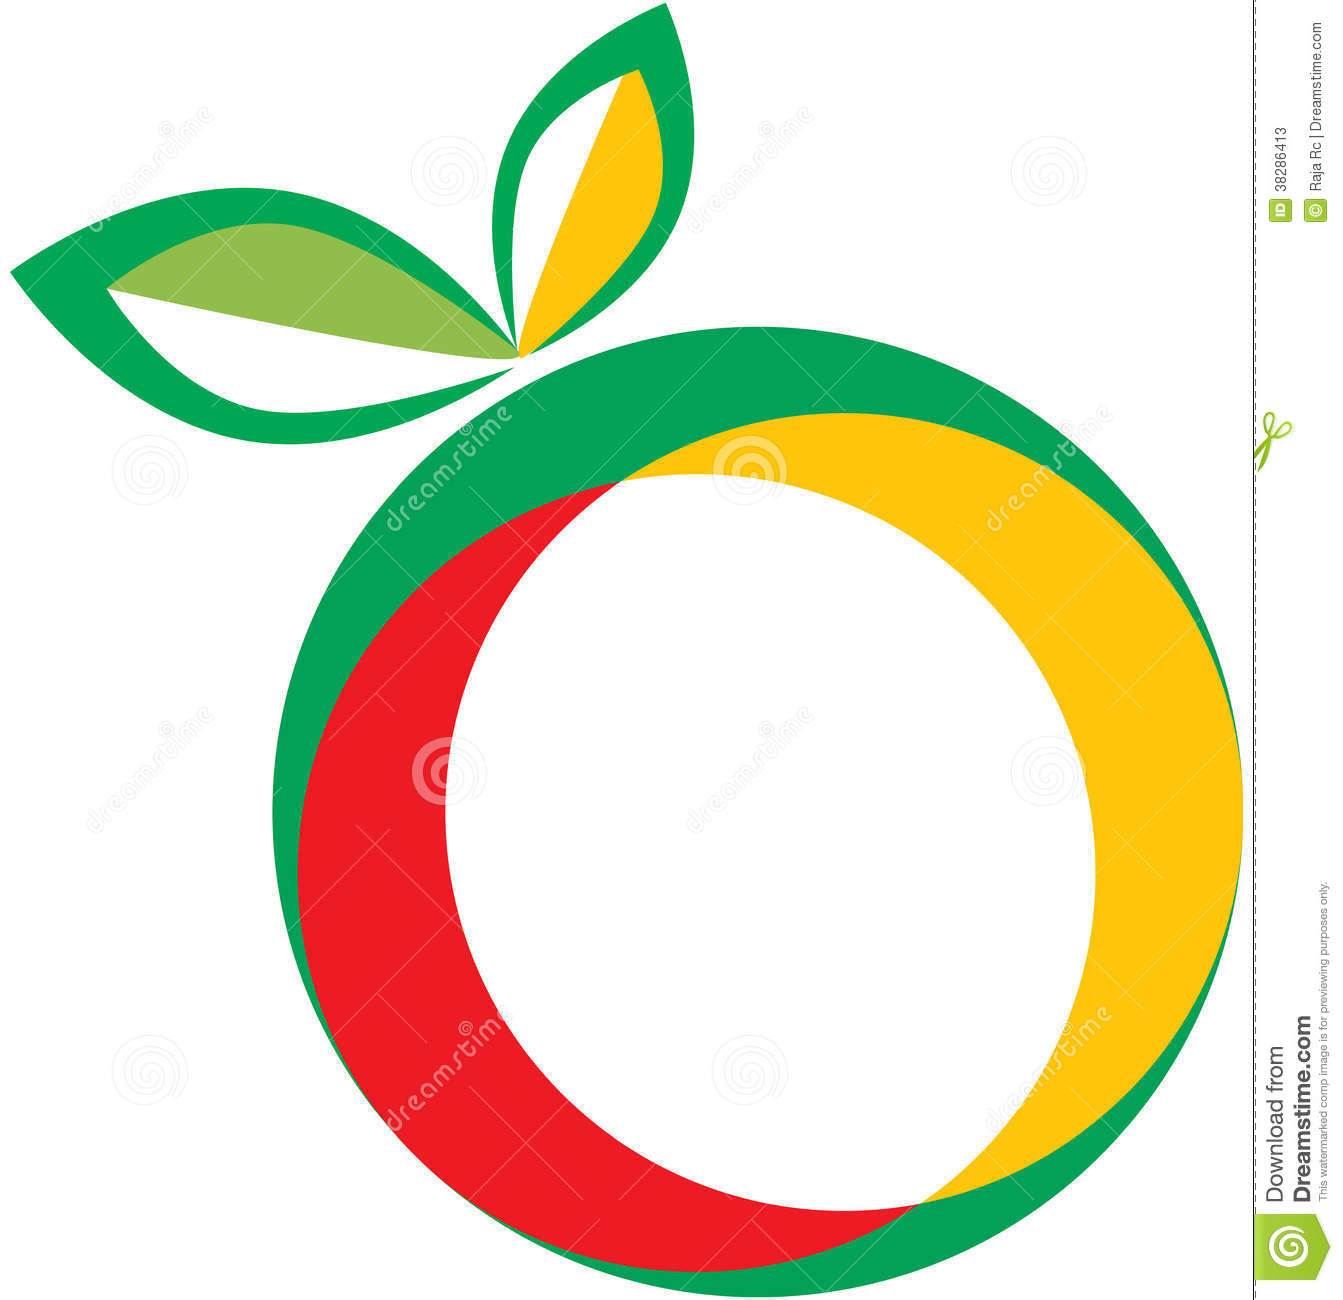 Fruit Logo Stock Photos - Image: 38286413